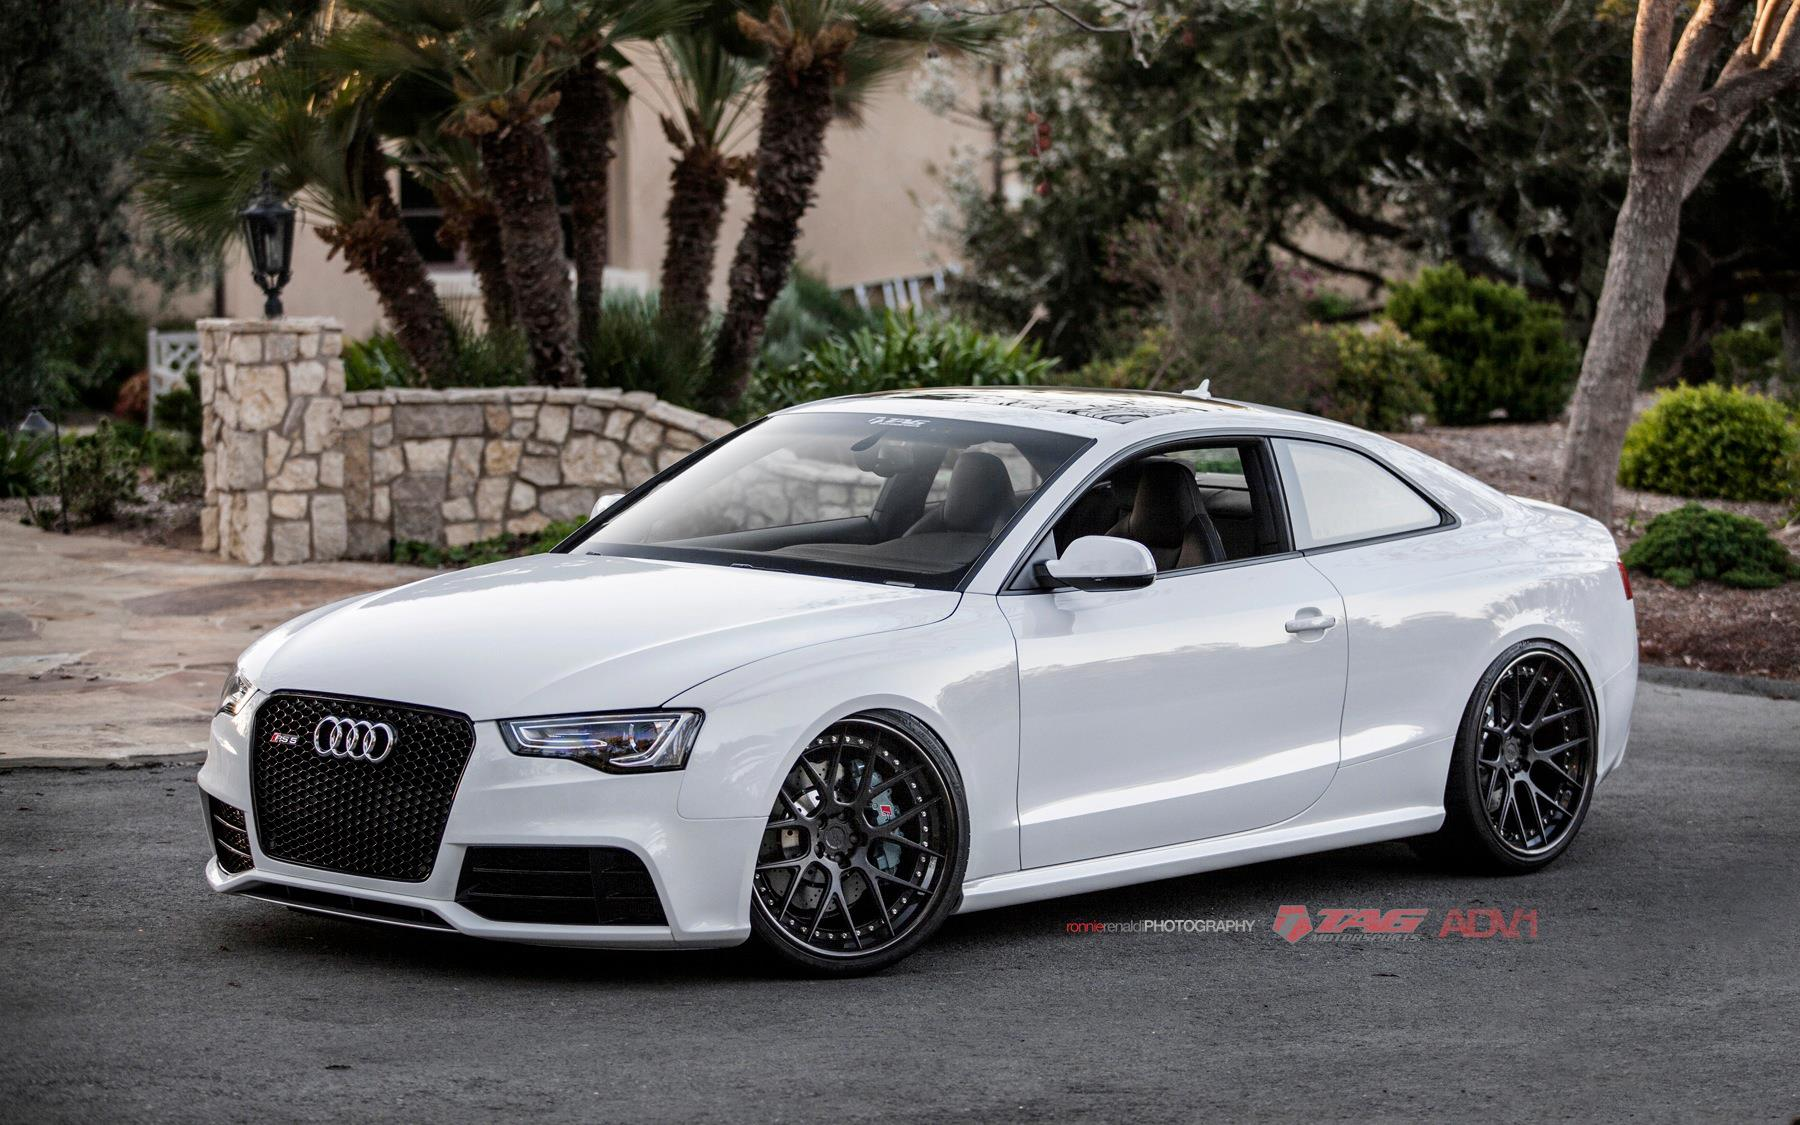 2013 audi rs5 sharpened up by tag motorsports autoevolution for Newspaper wallpaper for sale